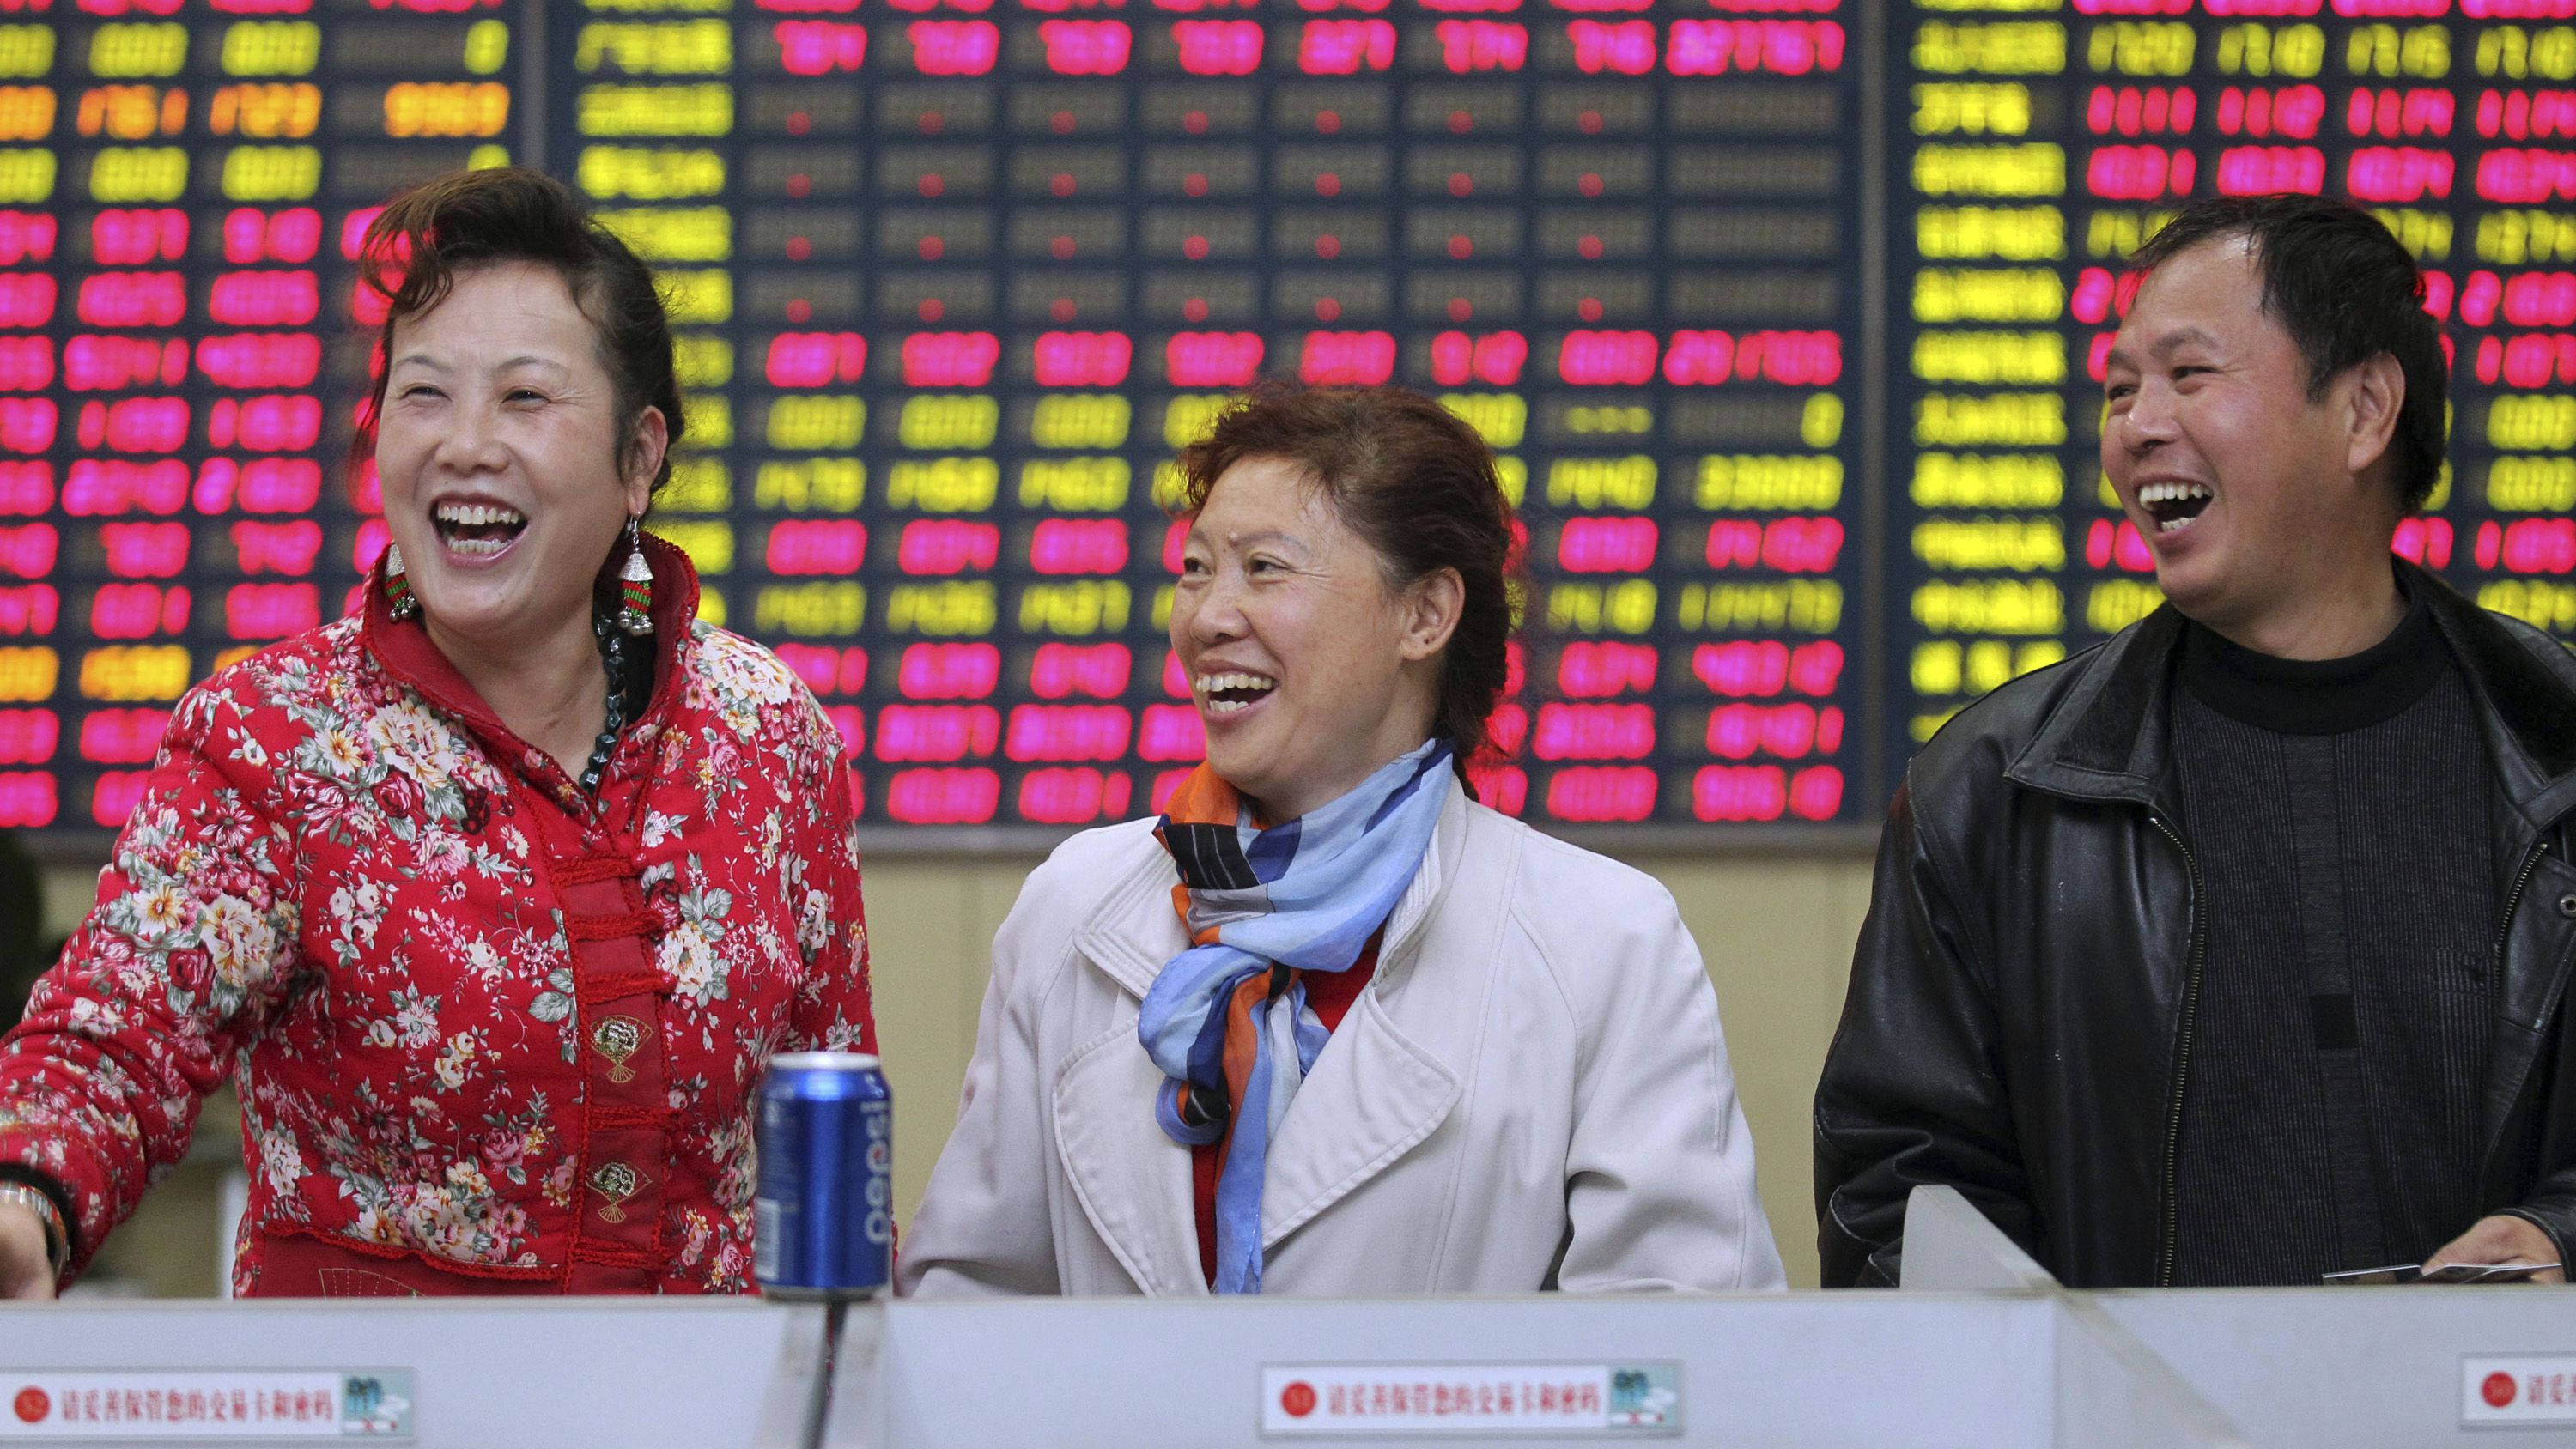 DATE IMPORTED:November 24, 2014Investors laugh in front of an electronic screen showing stock information at a brokerage house in Nantong, Jiangsu province, November 24, 2014. Chinese stocks rose, with a key index hitting a three-year high, while bond yields fell on Monday. REUTERS/China Daily